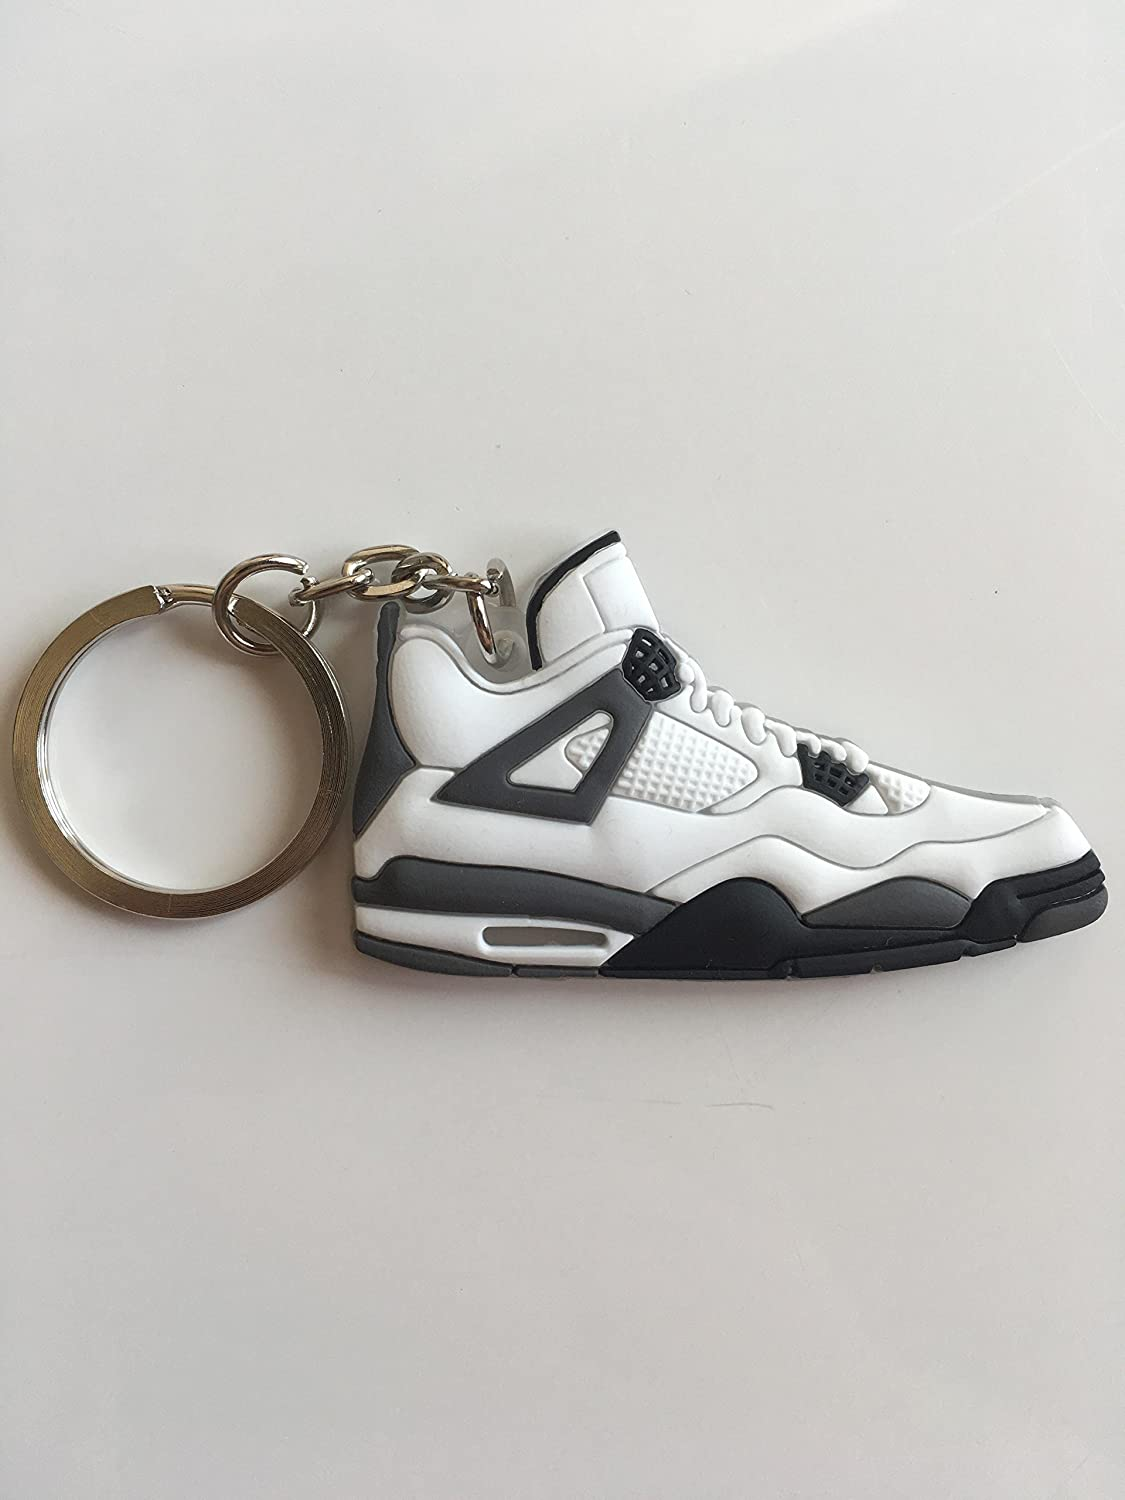 promo code 68cfb 8ffec Amazon.com   Jordan Retro 4 White Cement Sneaker Keychain Shoes Keyring AJ  23 OG   Sports   Outdoors